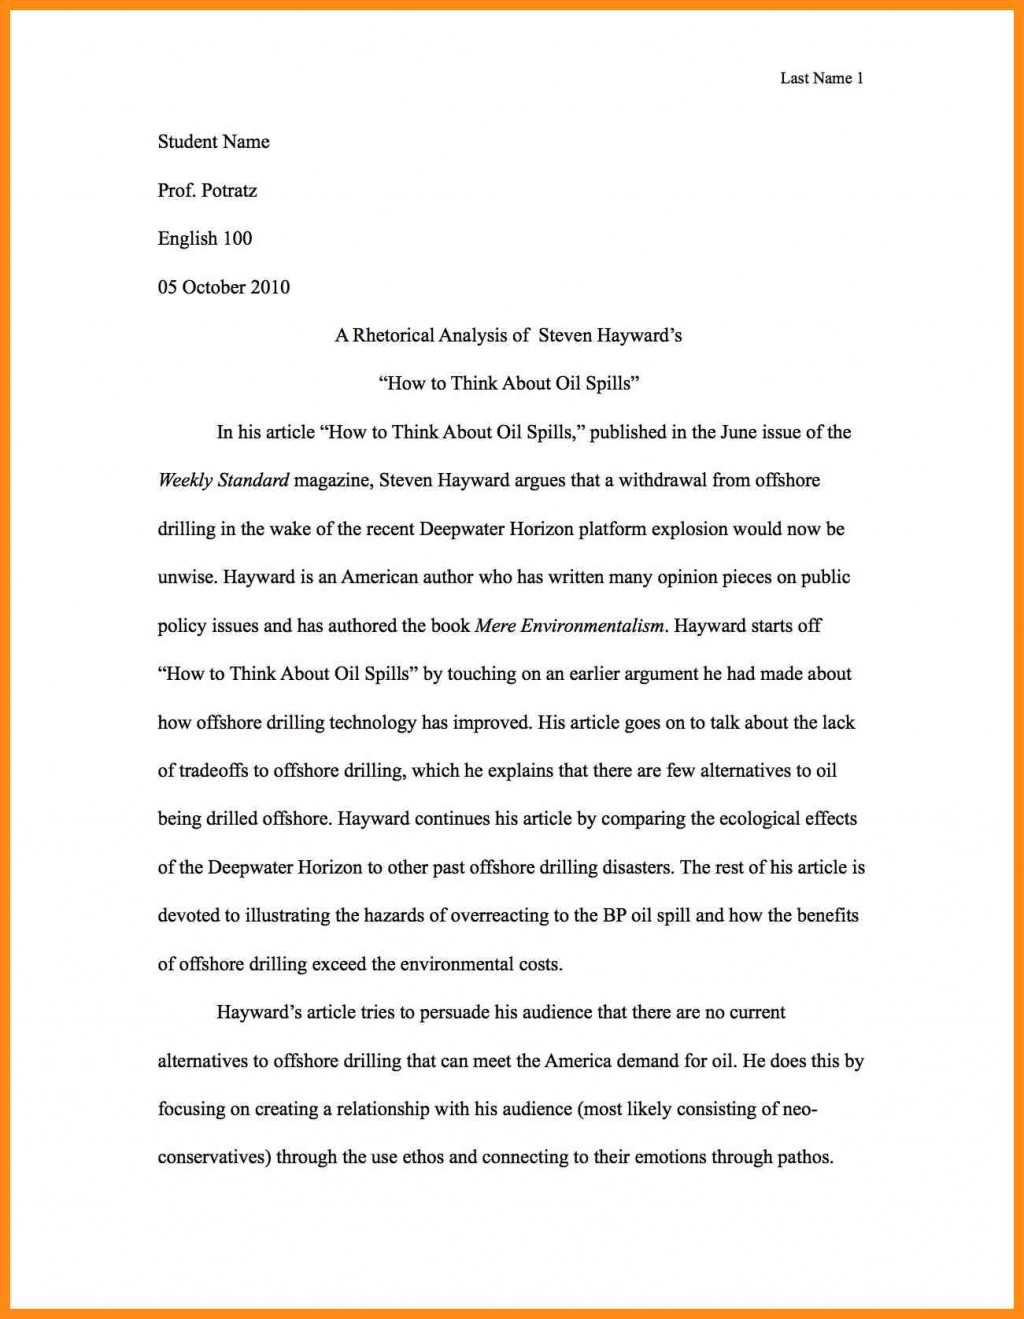 001 Essay Example Rethorical Write Best Rhetorical Analysis Of Using Ethos Pathos And Logos Awful Outline Conclusion Strategies Topics 2018 Large